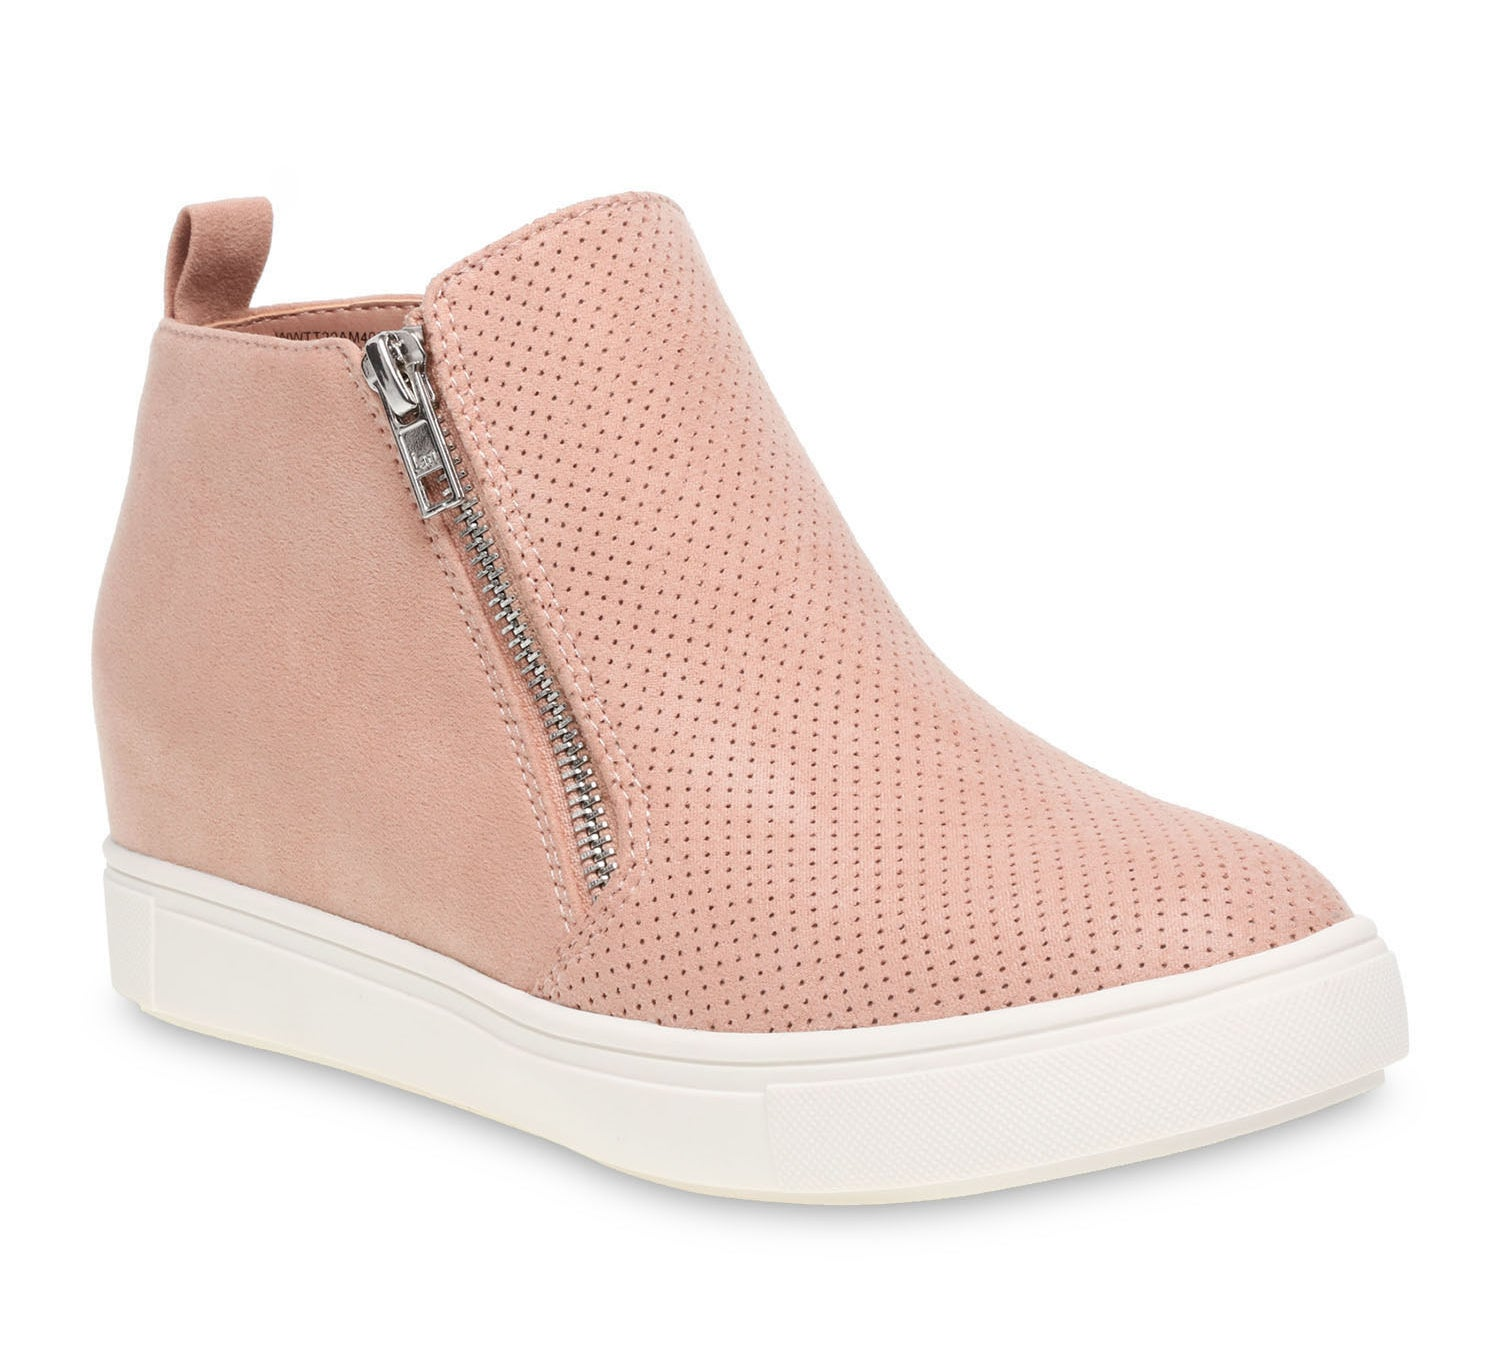 The pink sneaker wedges